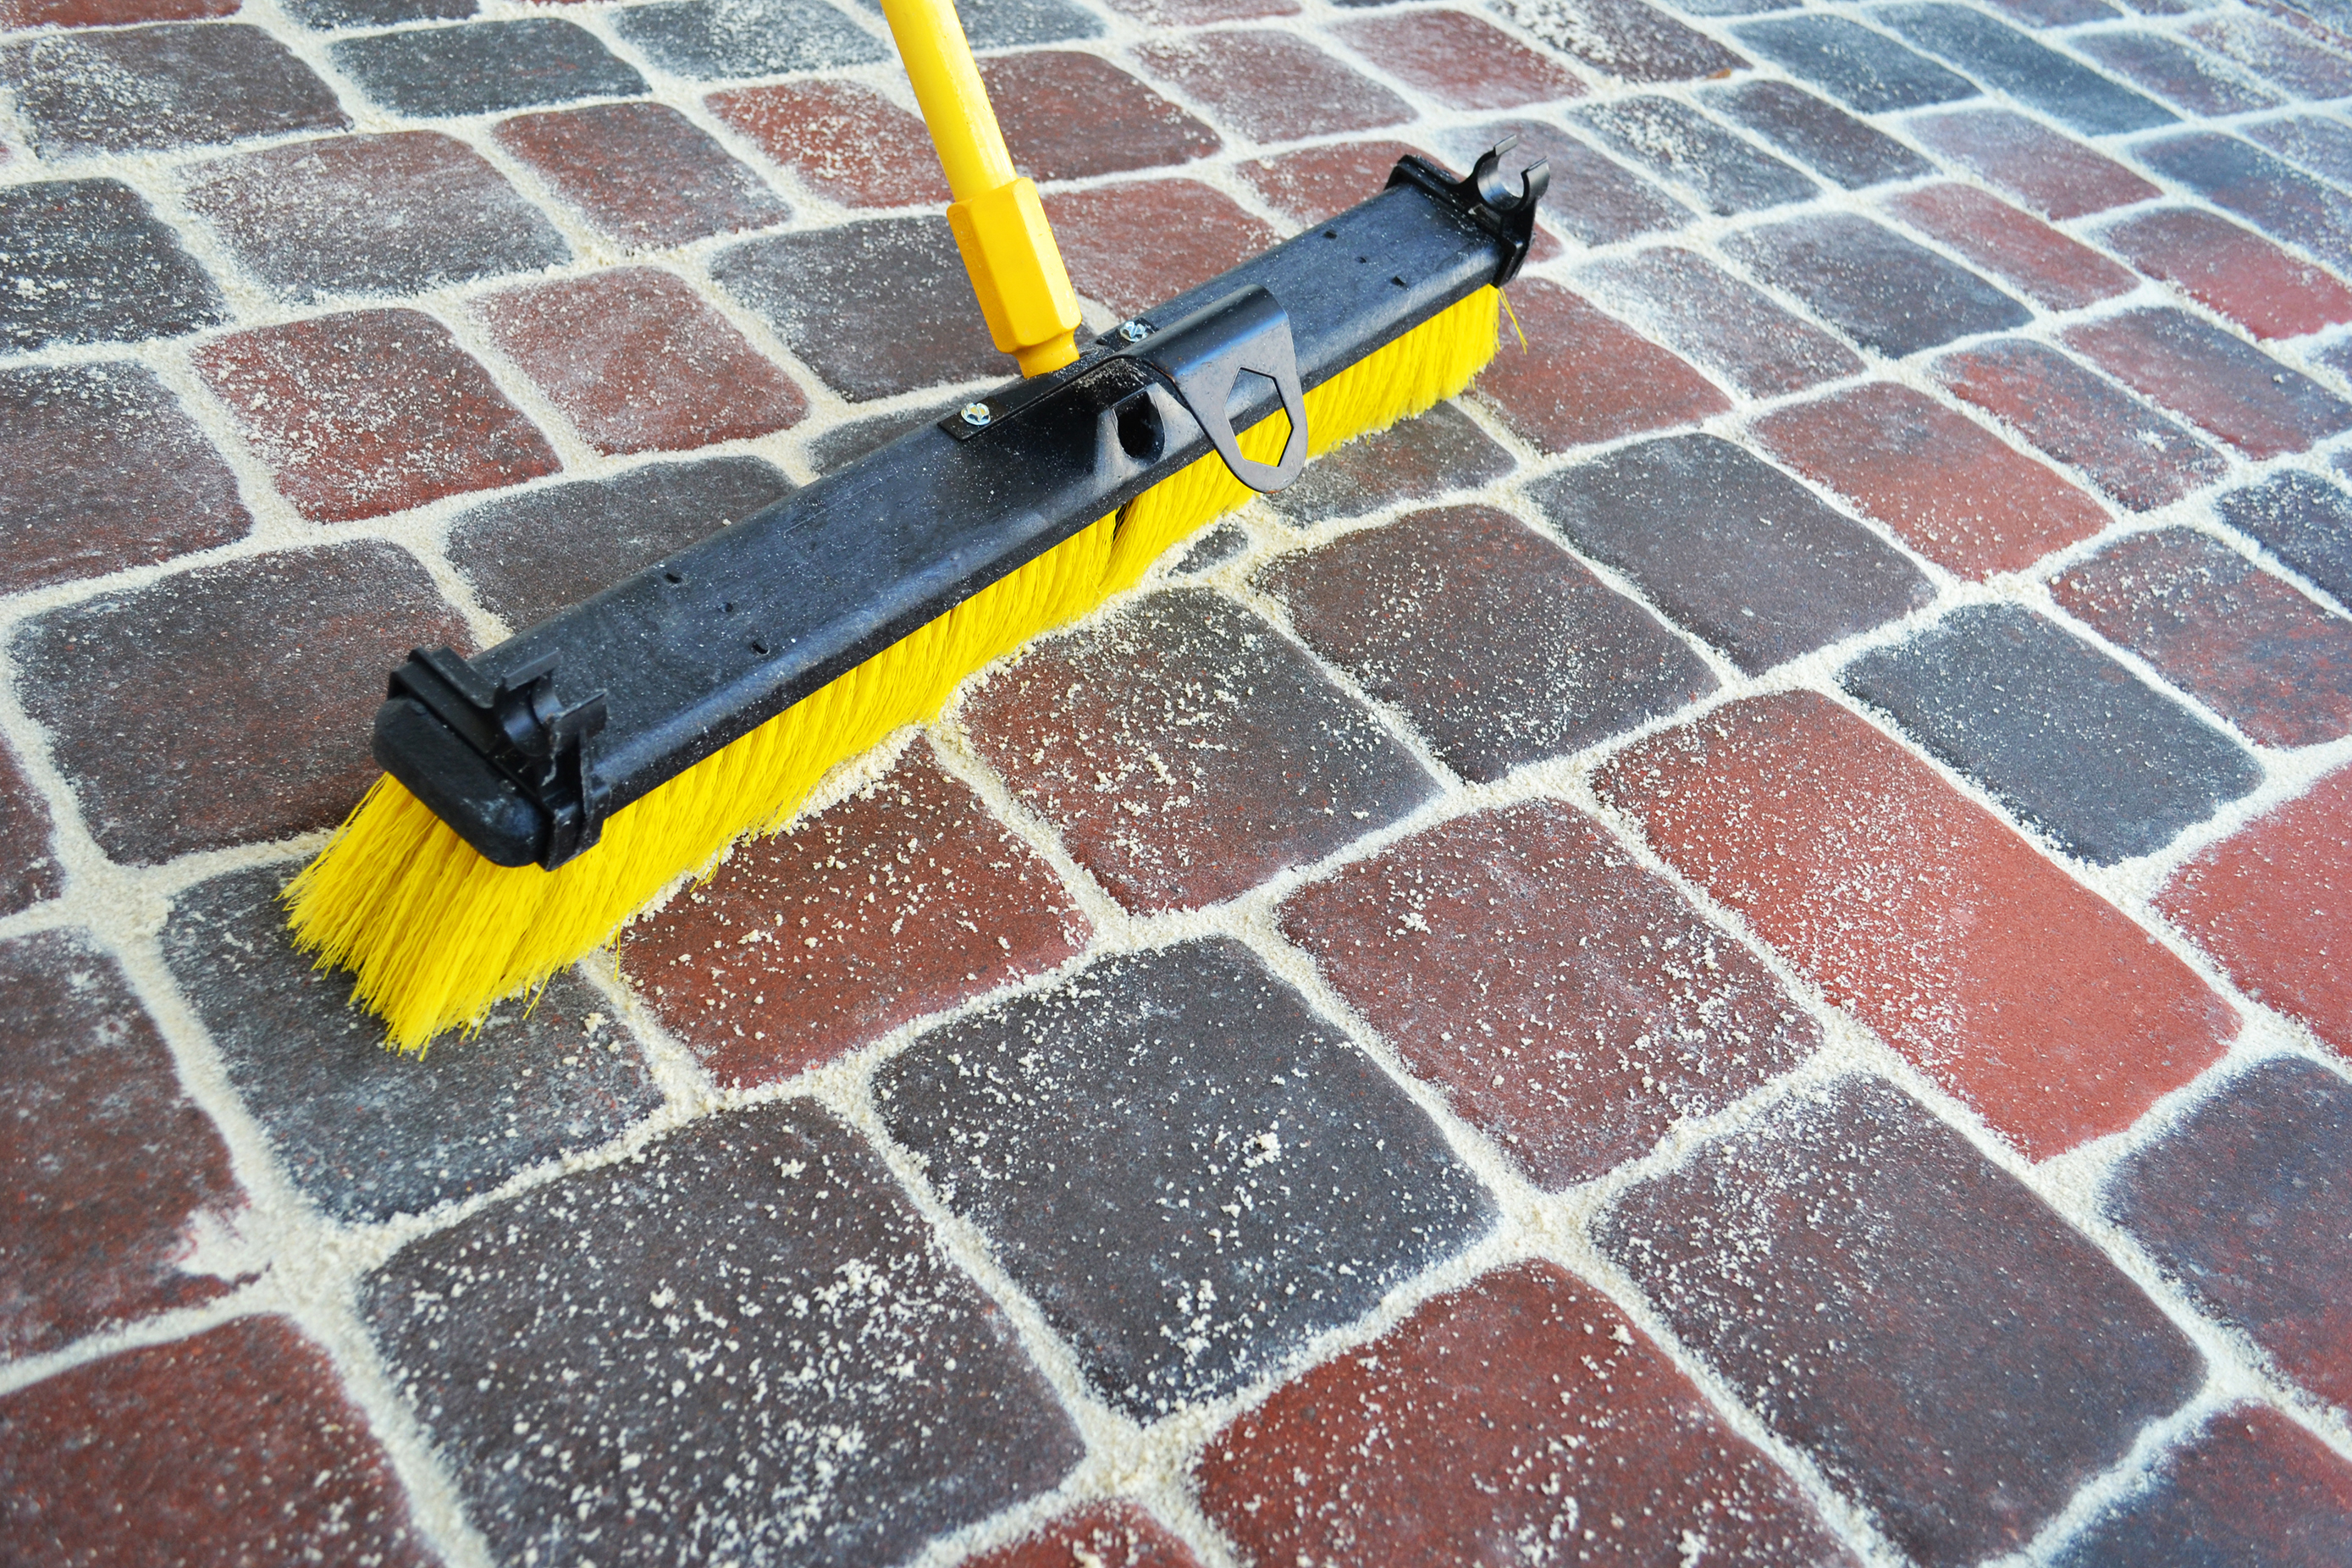 Advice for Cleaning and Sealing Pavers